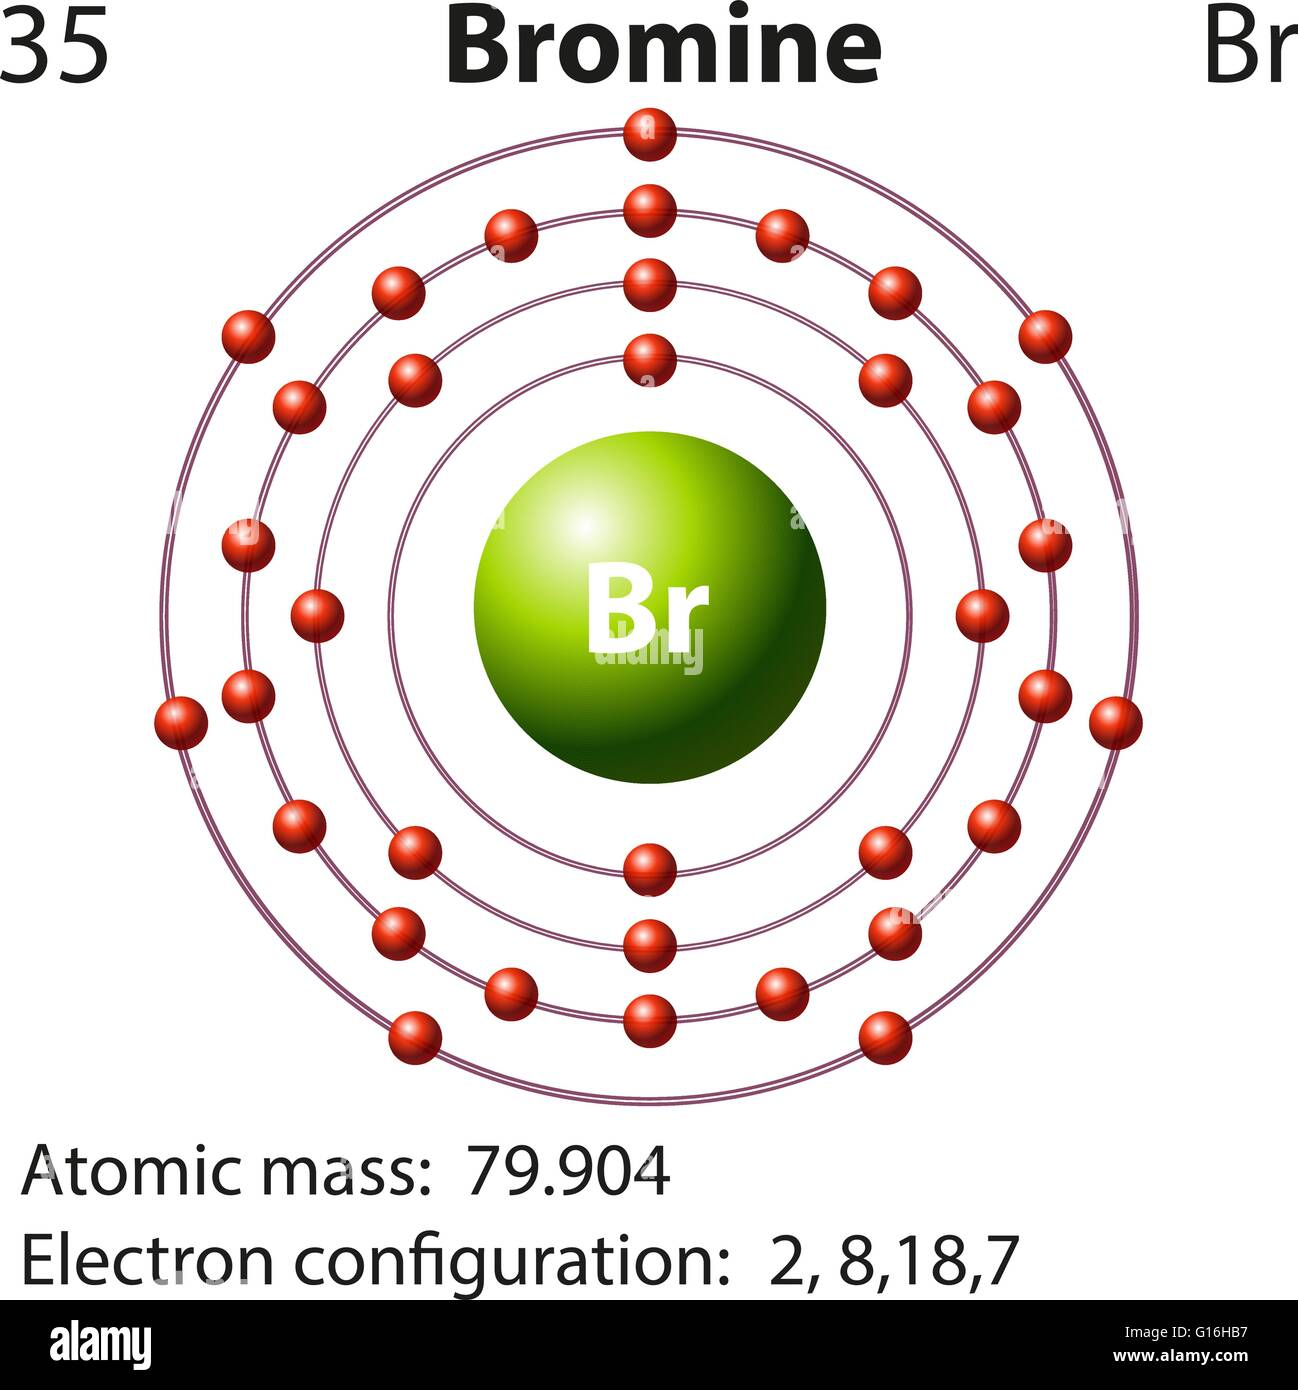 Symbol and electron diagram for bromine illustration stock vector symbol and electron diagram for bromine illustration pooptronica Gallery